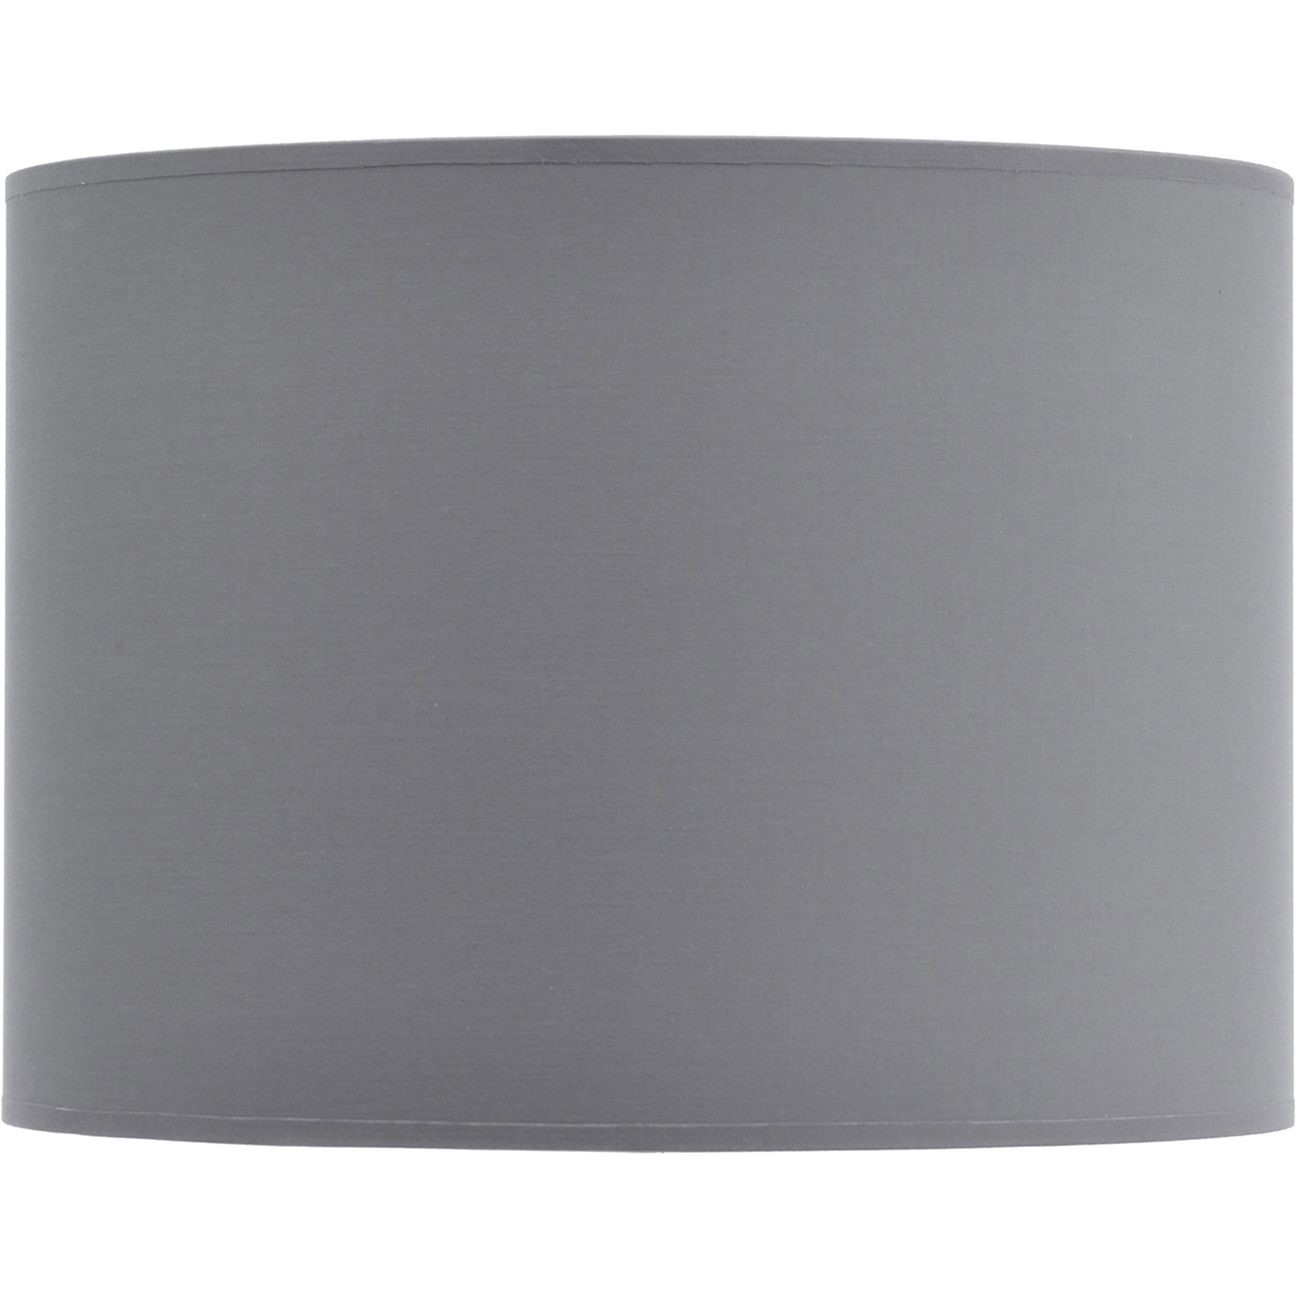 "Drum shade 16"" with silver lining"